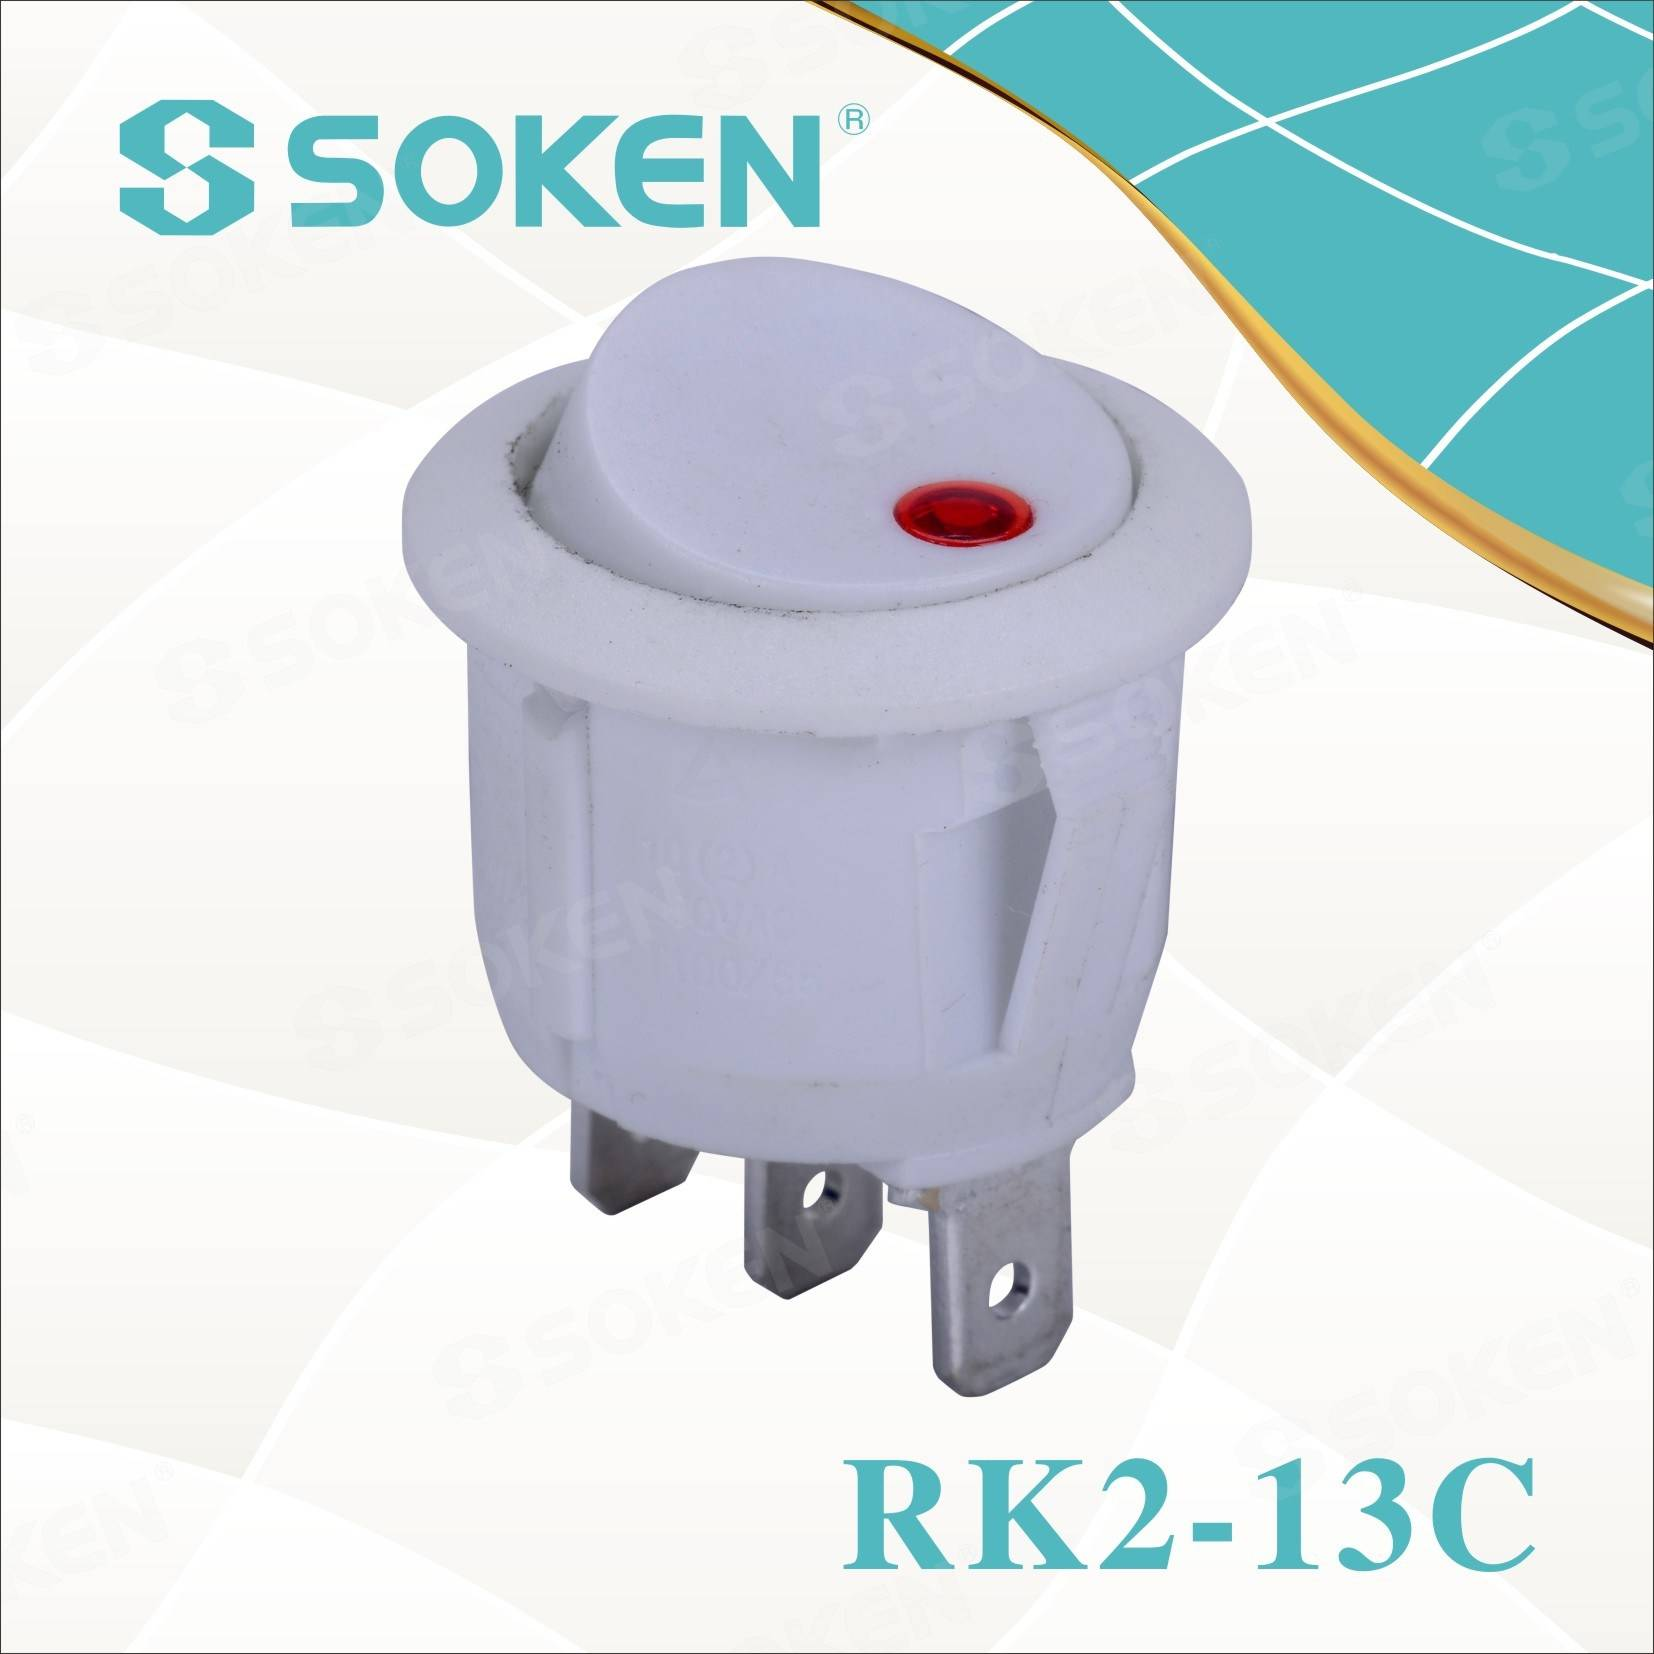 Soken 24V Rocker Switch